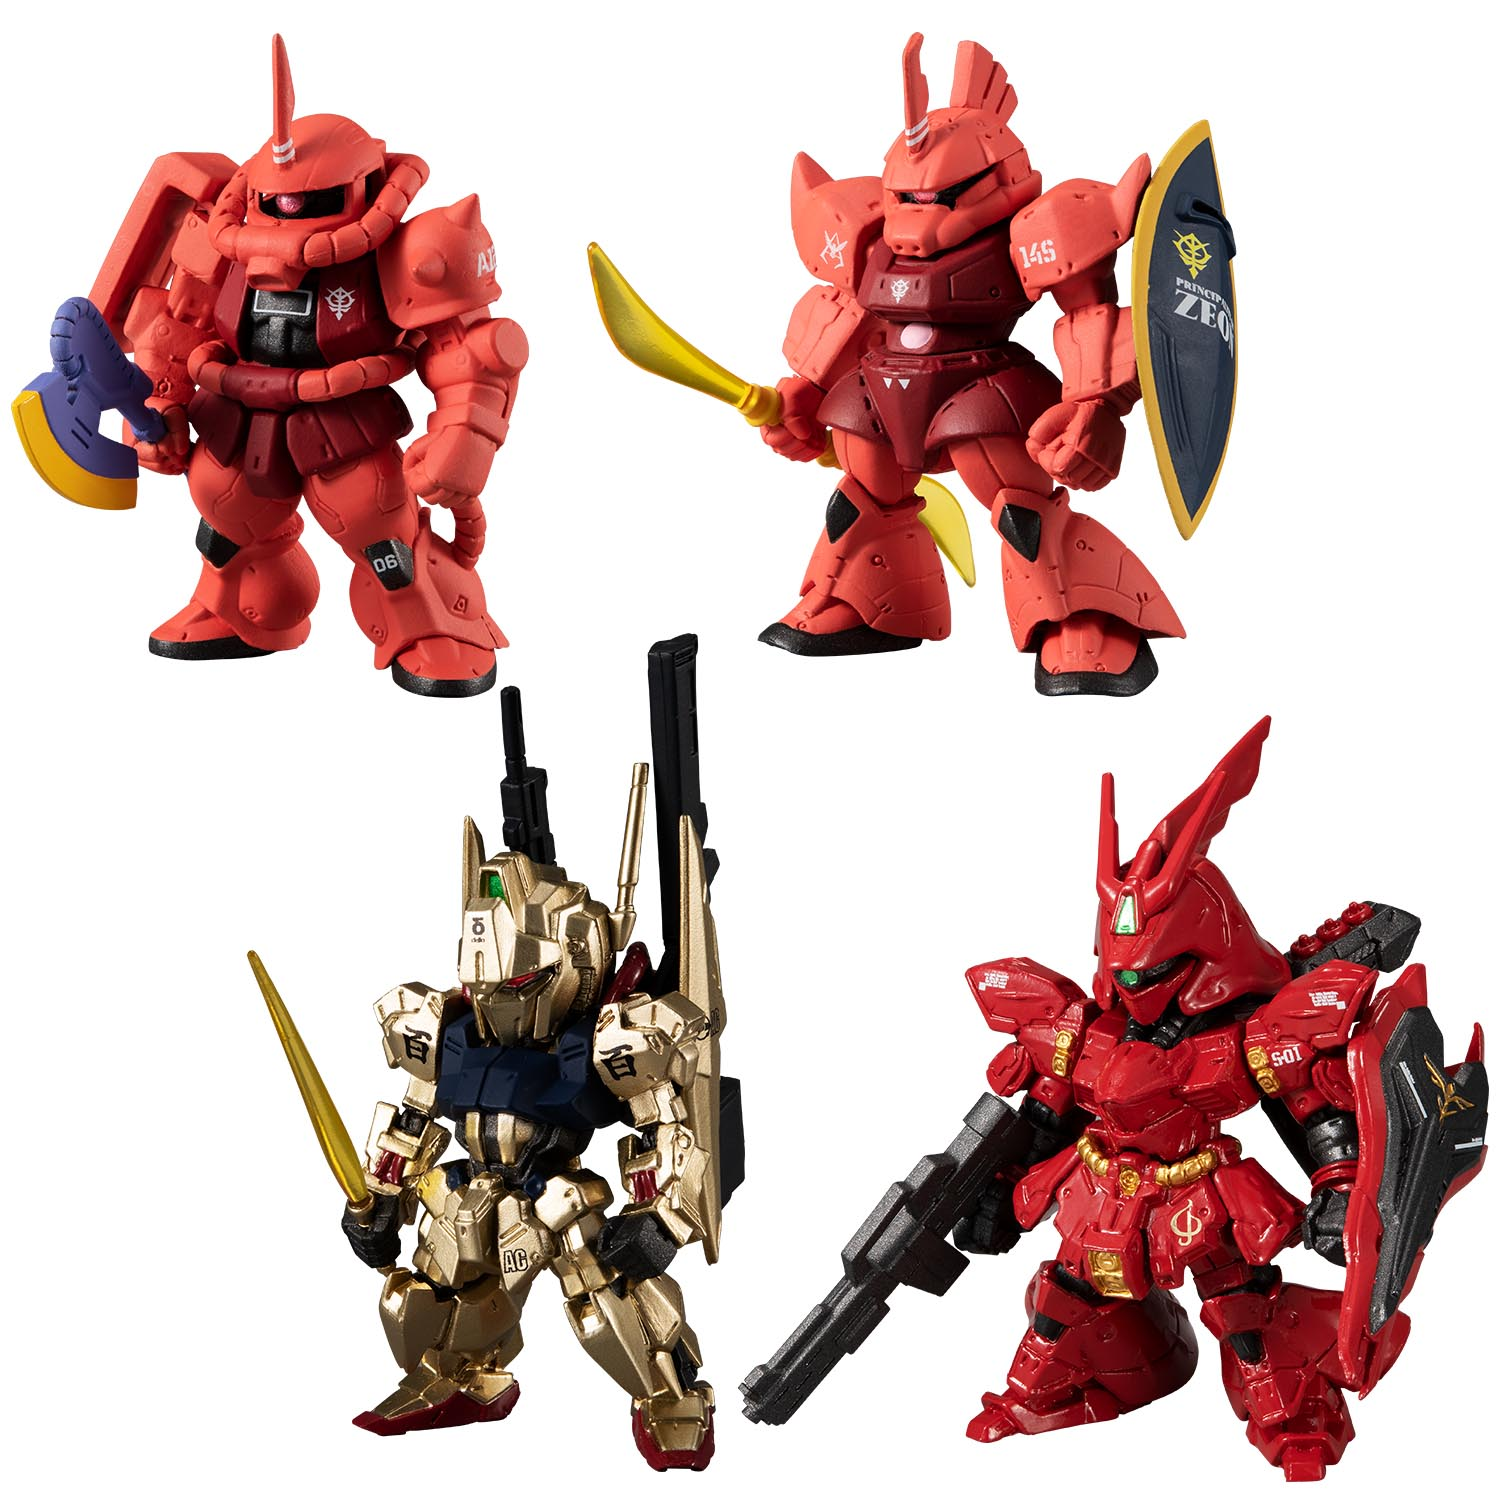 FW GUNDAM CONVERGE: CORE A TRACK OF RED COMET